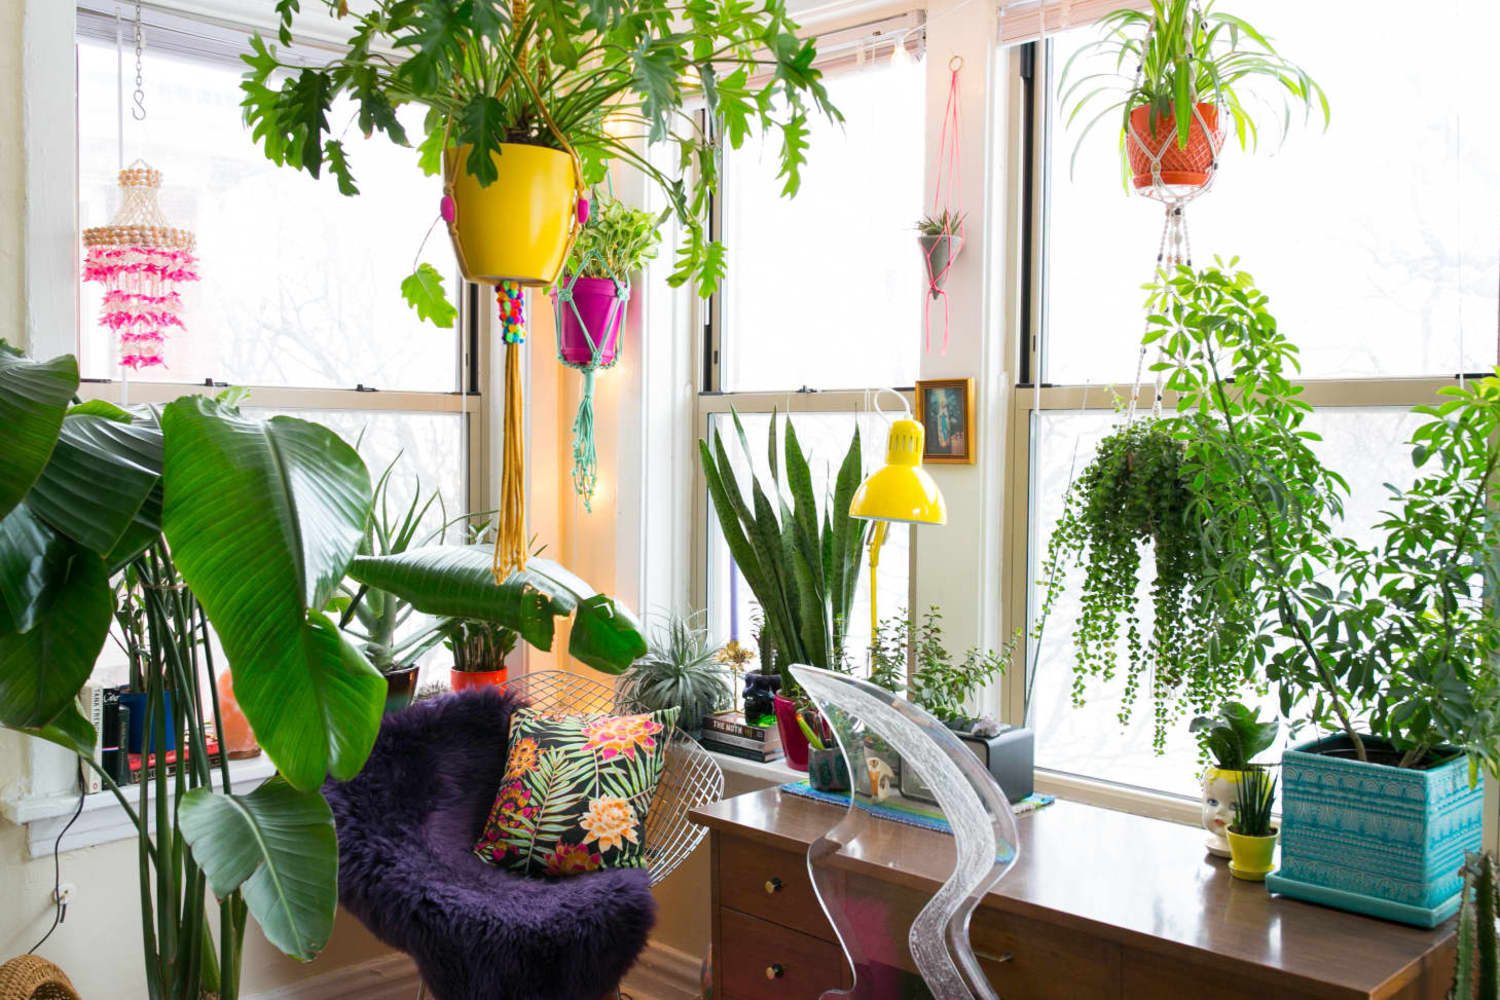 The Renter Friendly Solution for Hanging Plants Without Putting Holes in the Ceiling